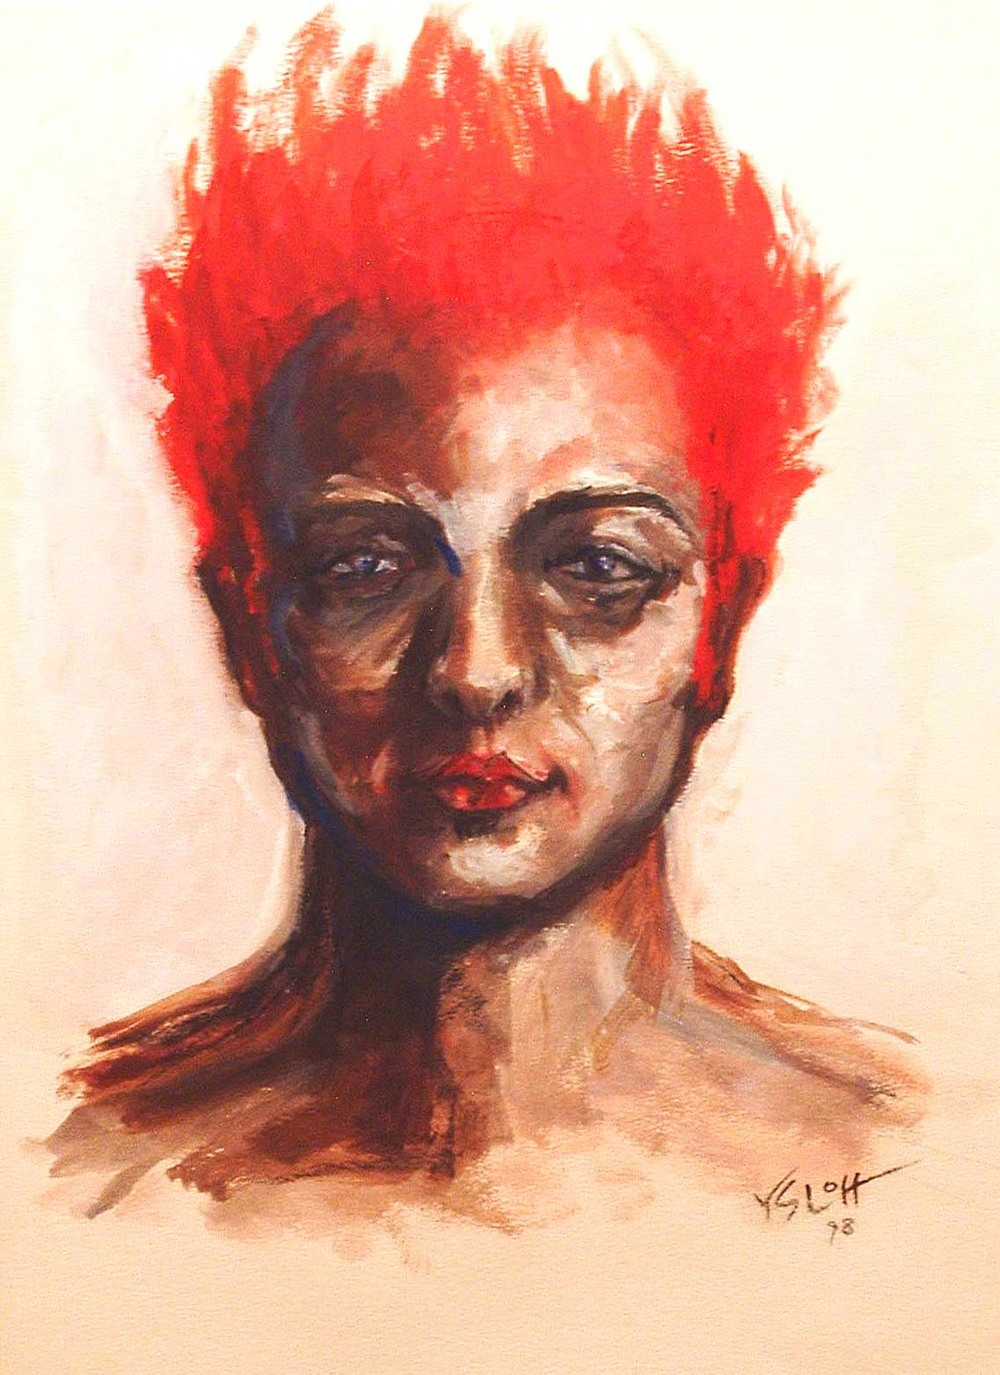 Firehead   oil on paper, 22 x 15      Reece Suarez, private colllection